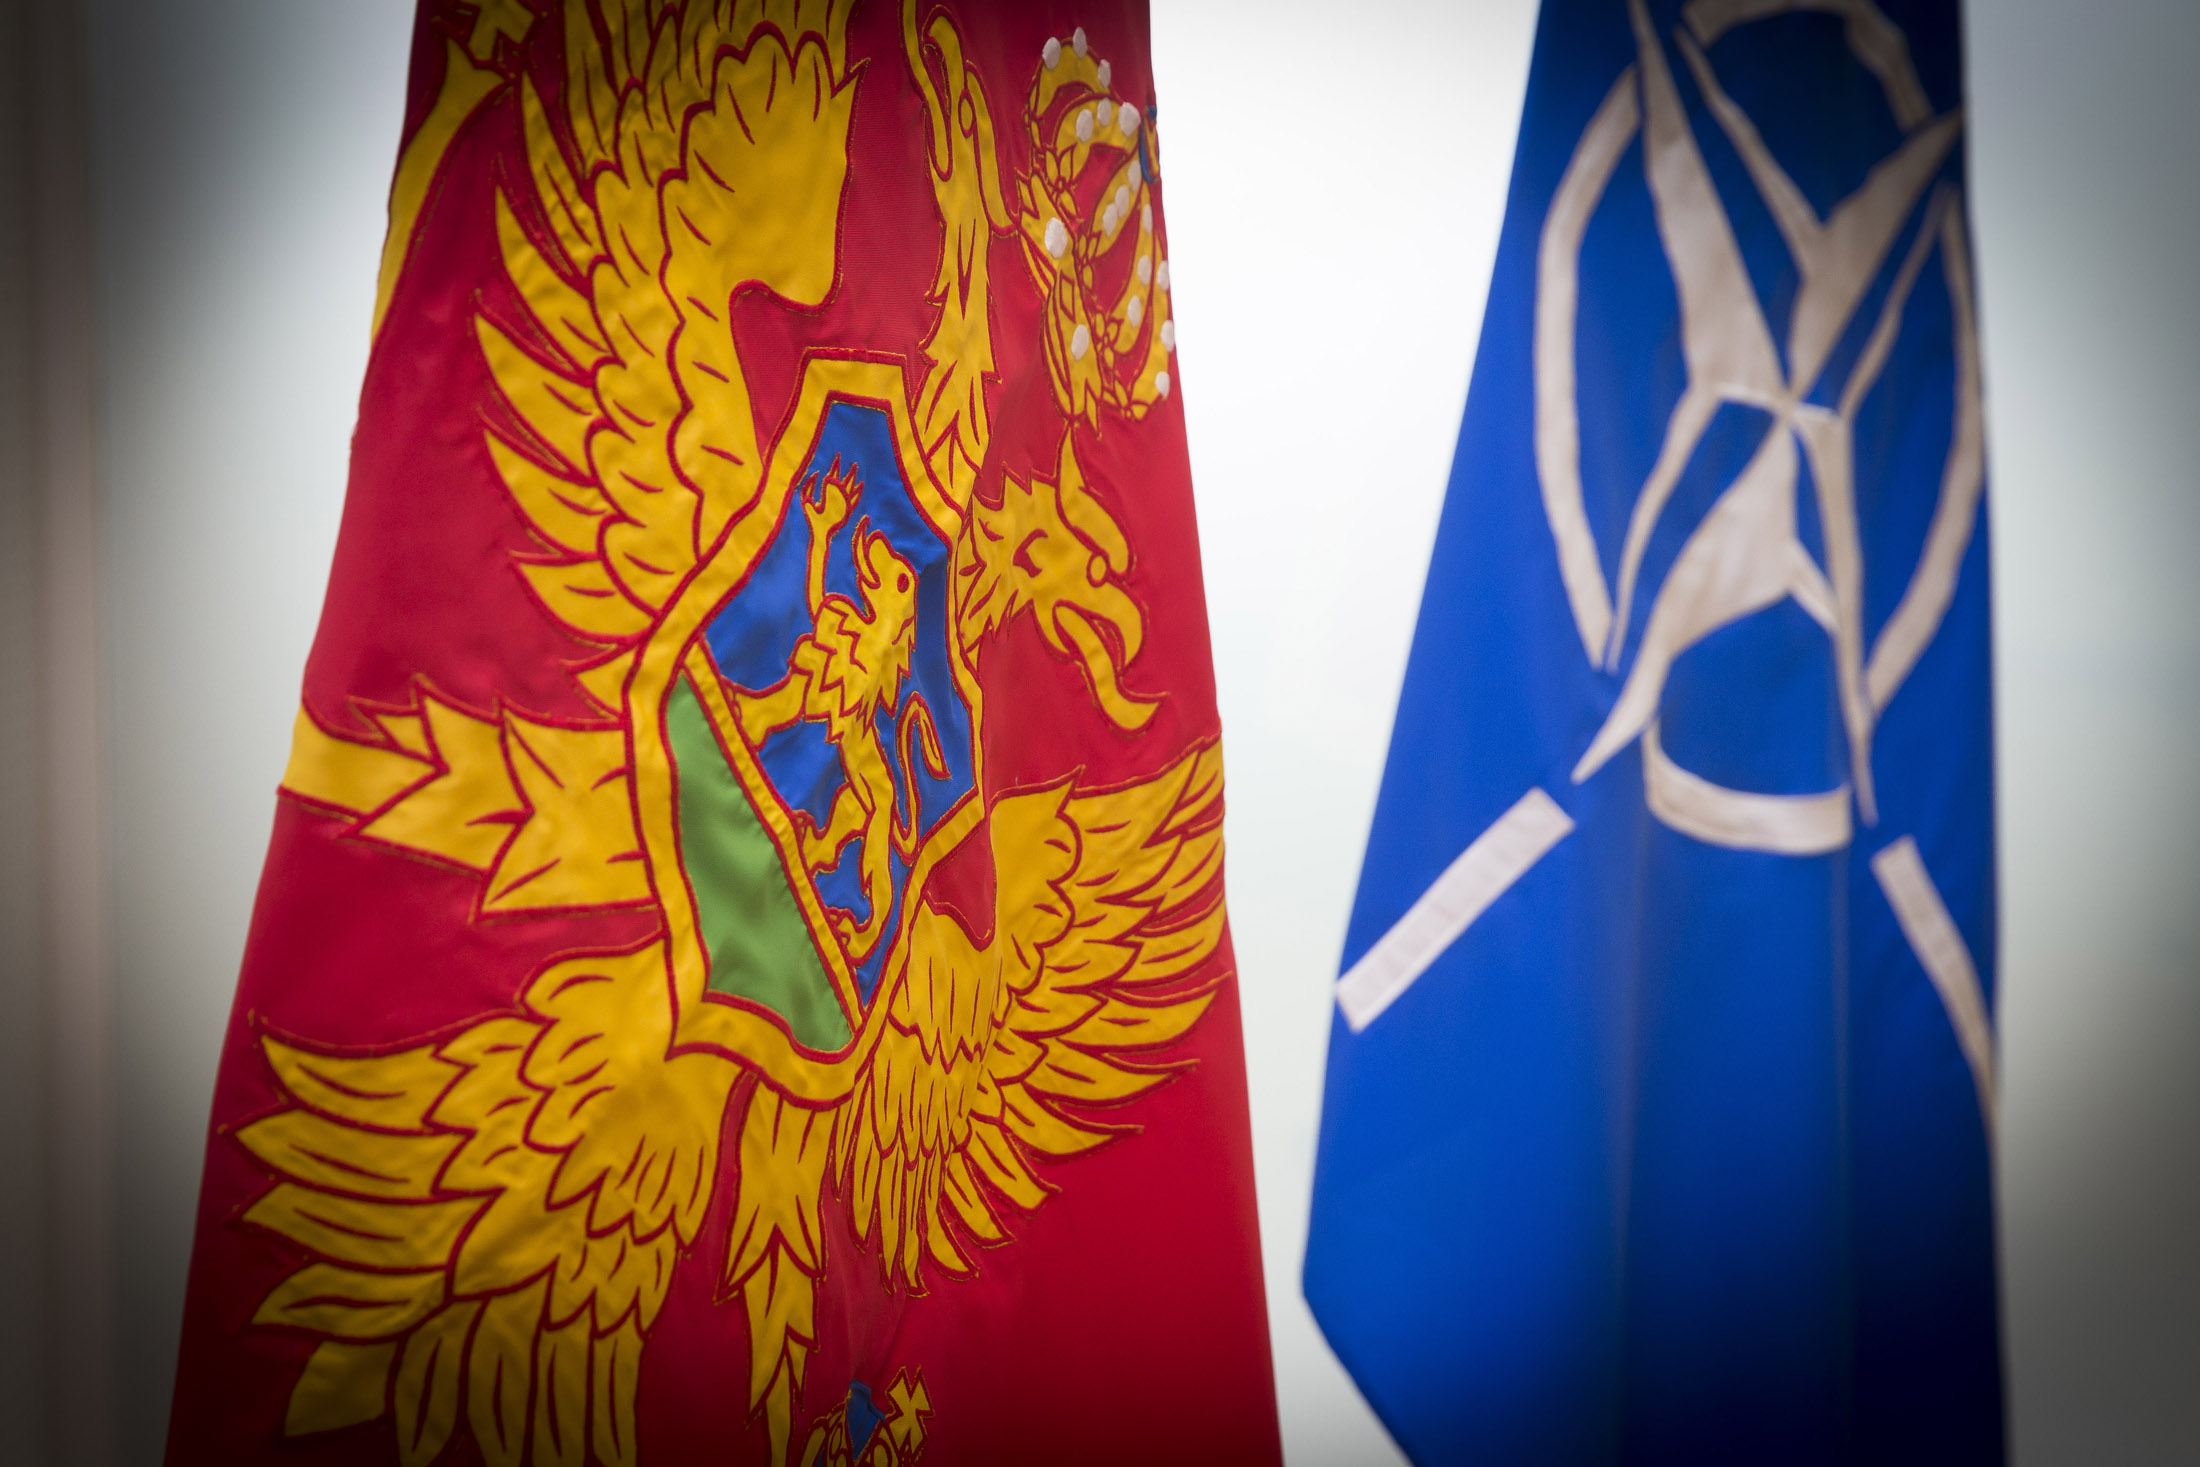 https://www.nato.int/nato_static_fl2014/assets/pictures/2016_02_160215a-montenegro-accession-talks/20160215_160215a-001.jpg